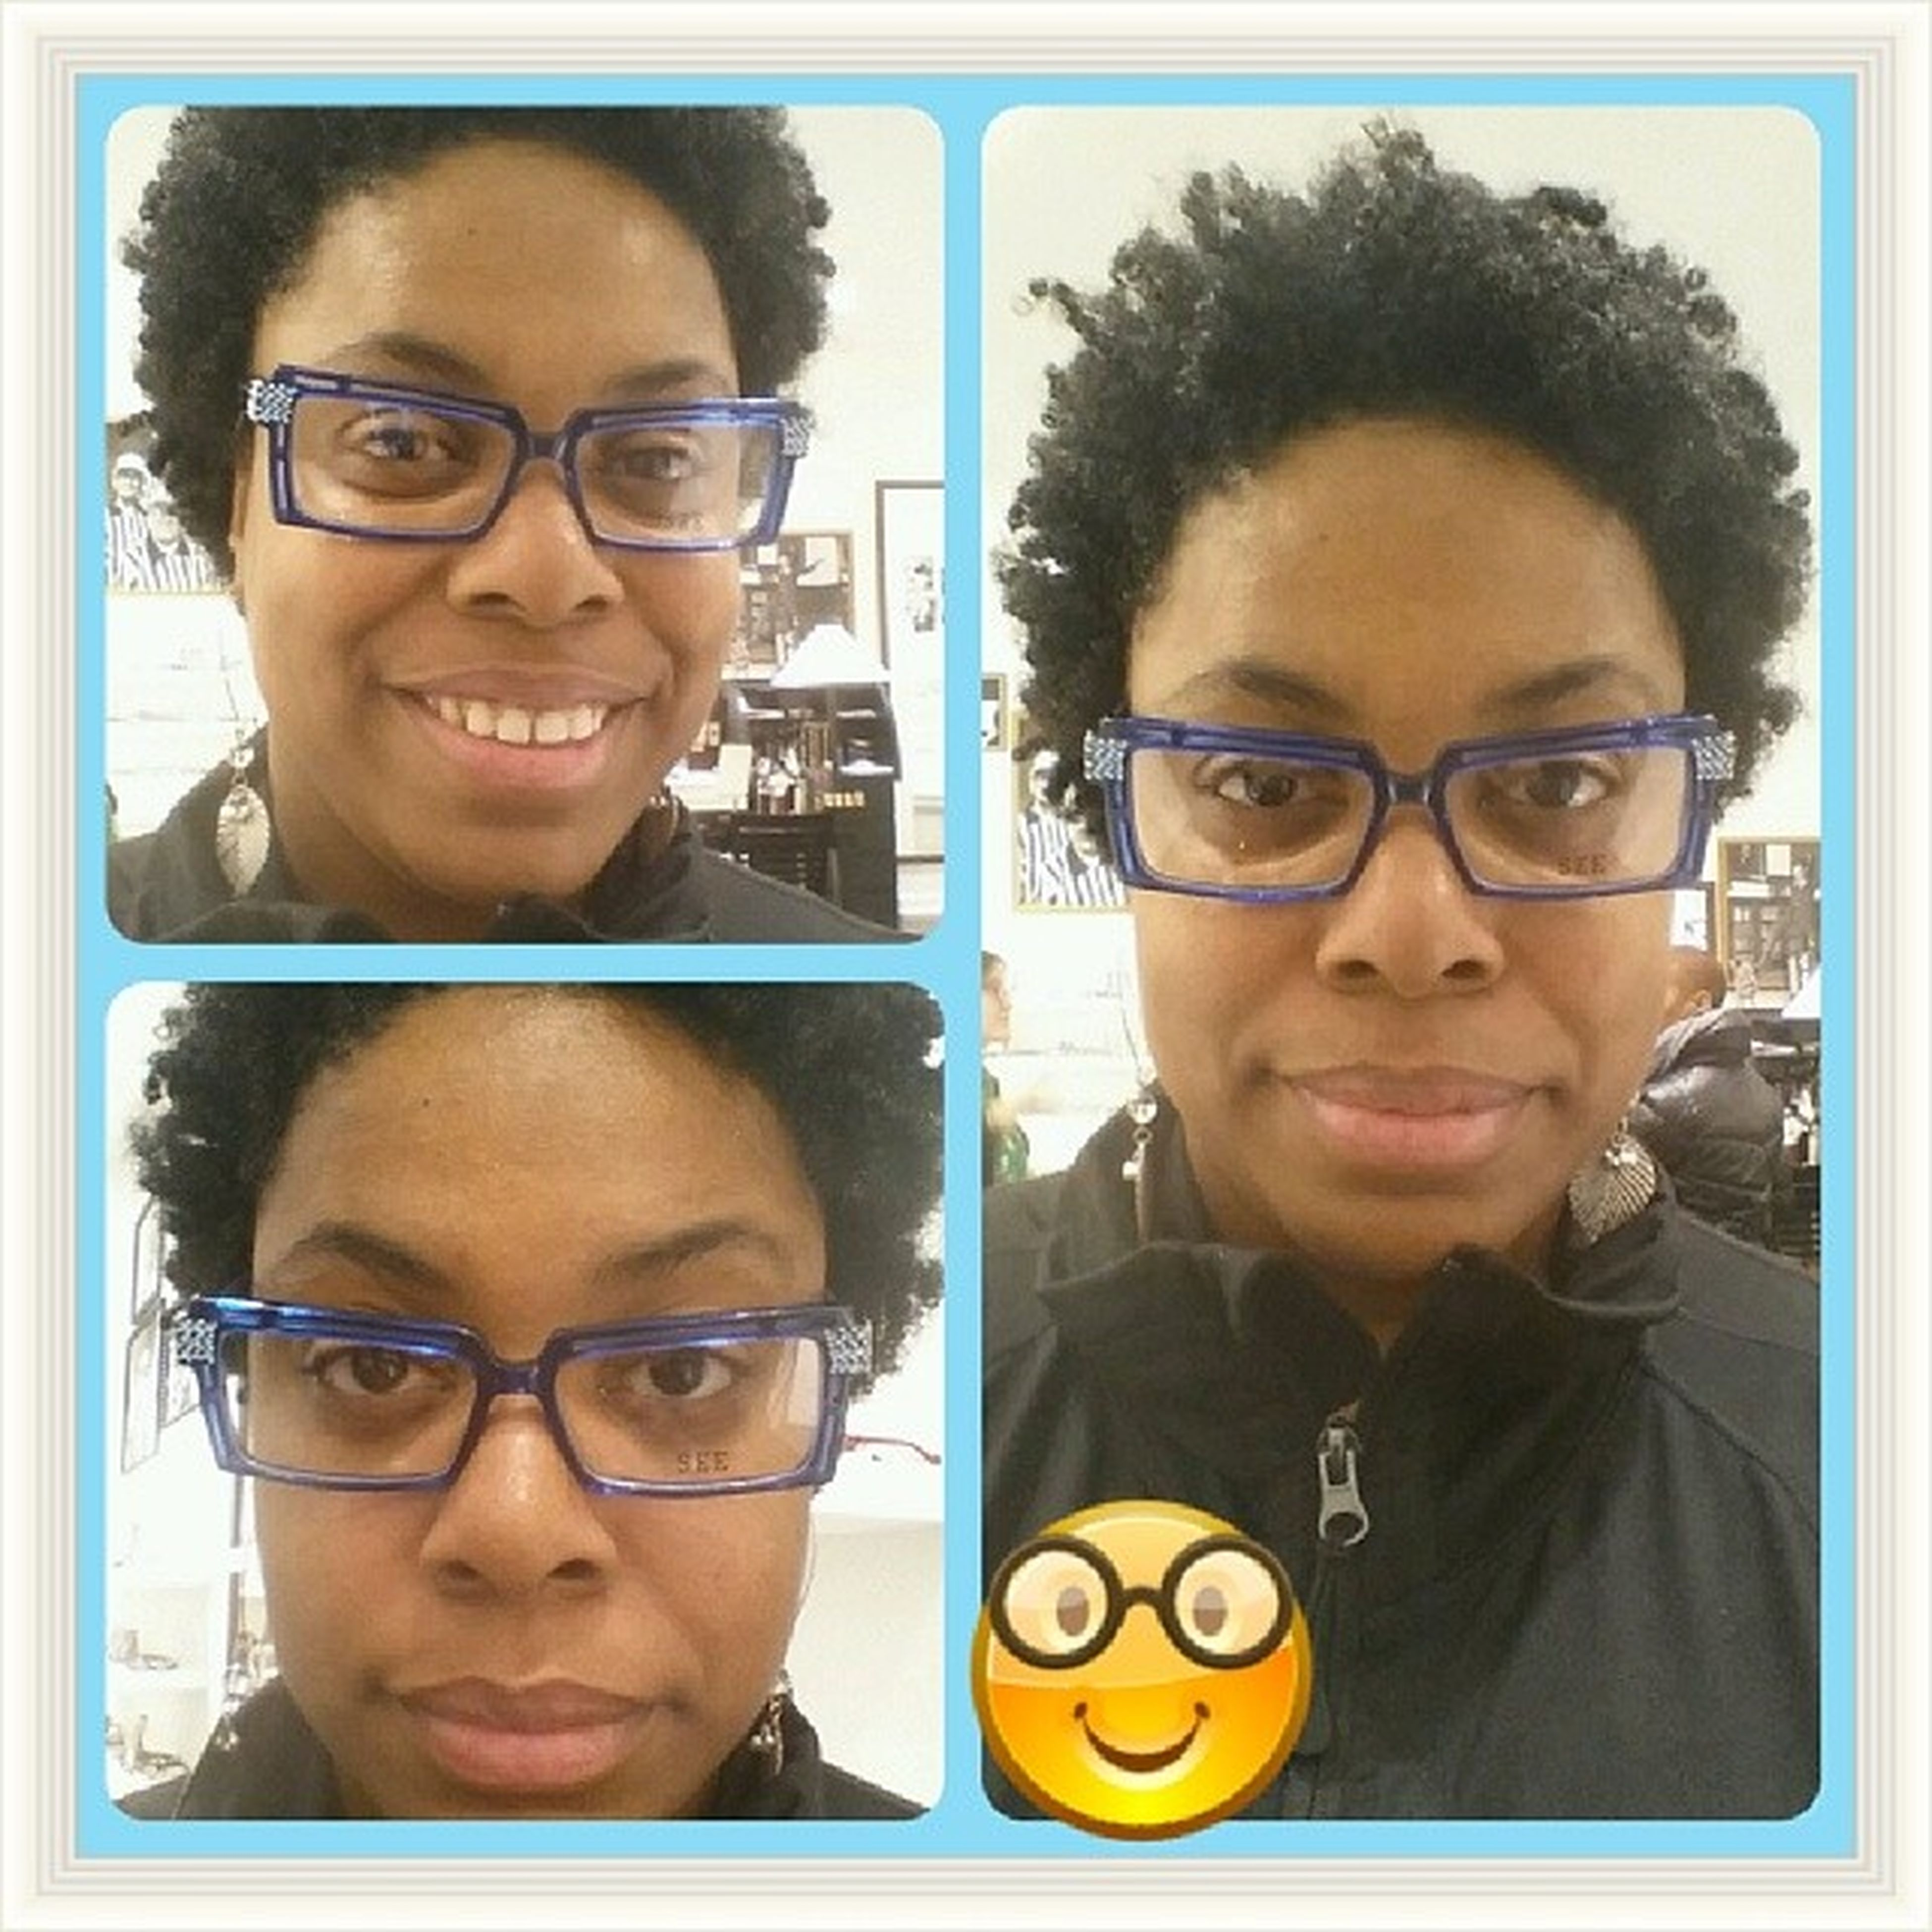 Another pair from @seeeyewear that look cute to me. Took this picture last week.